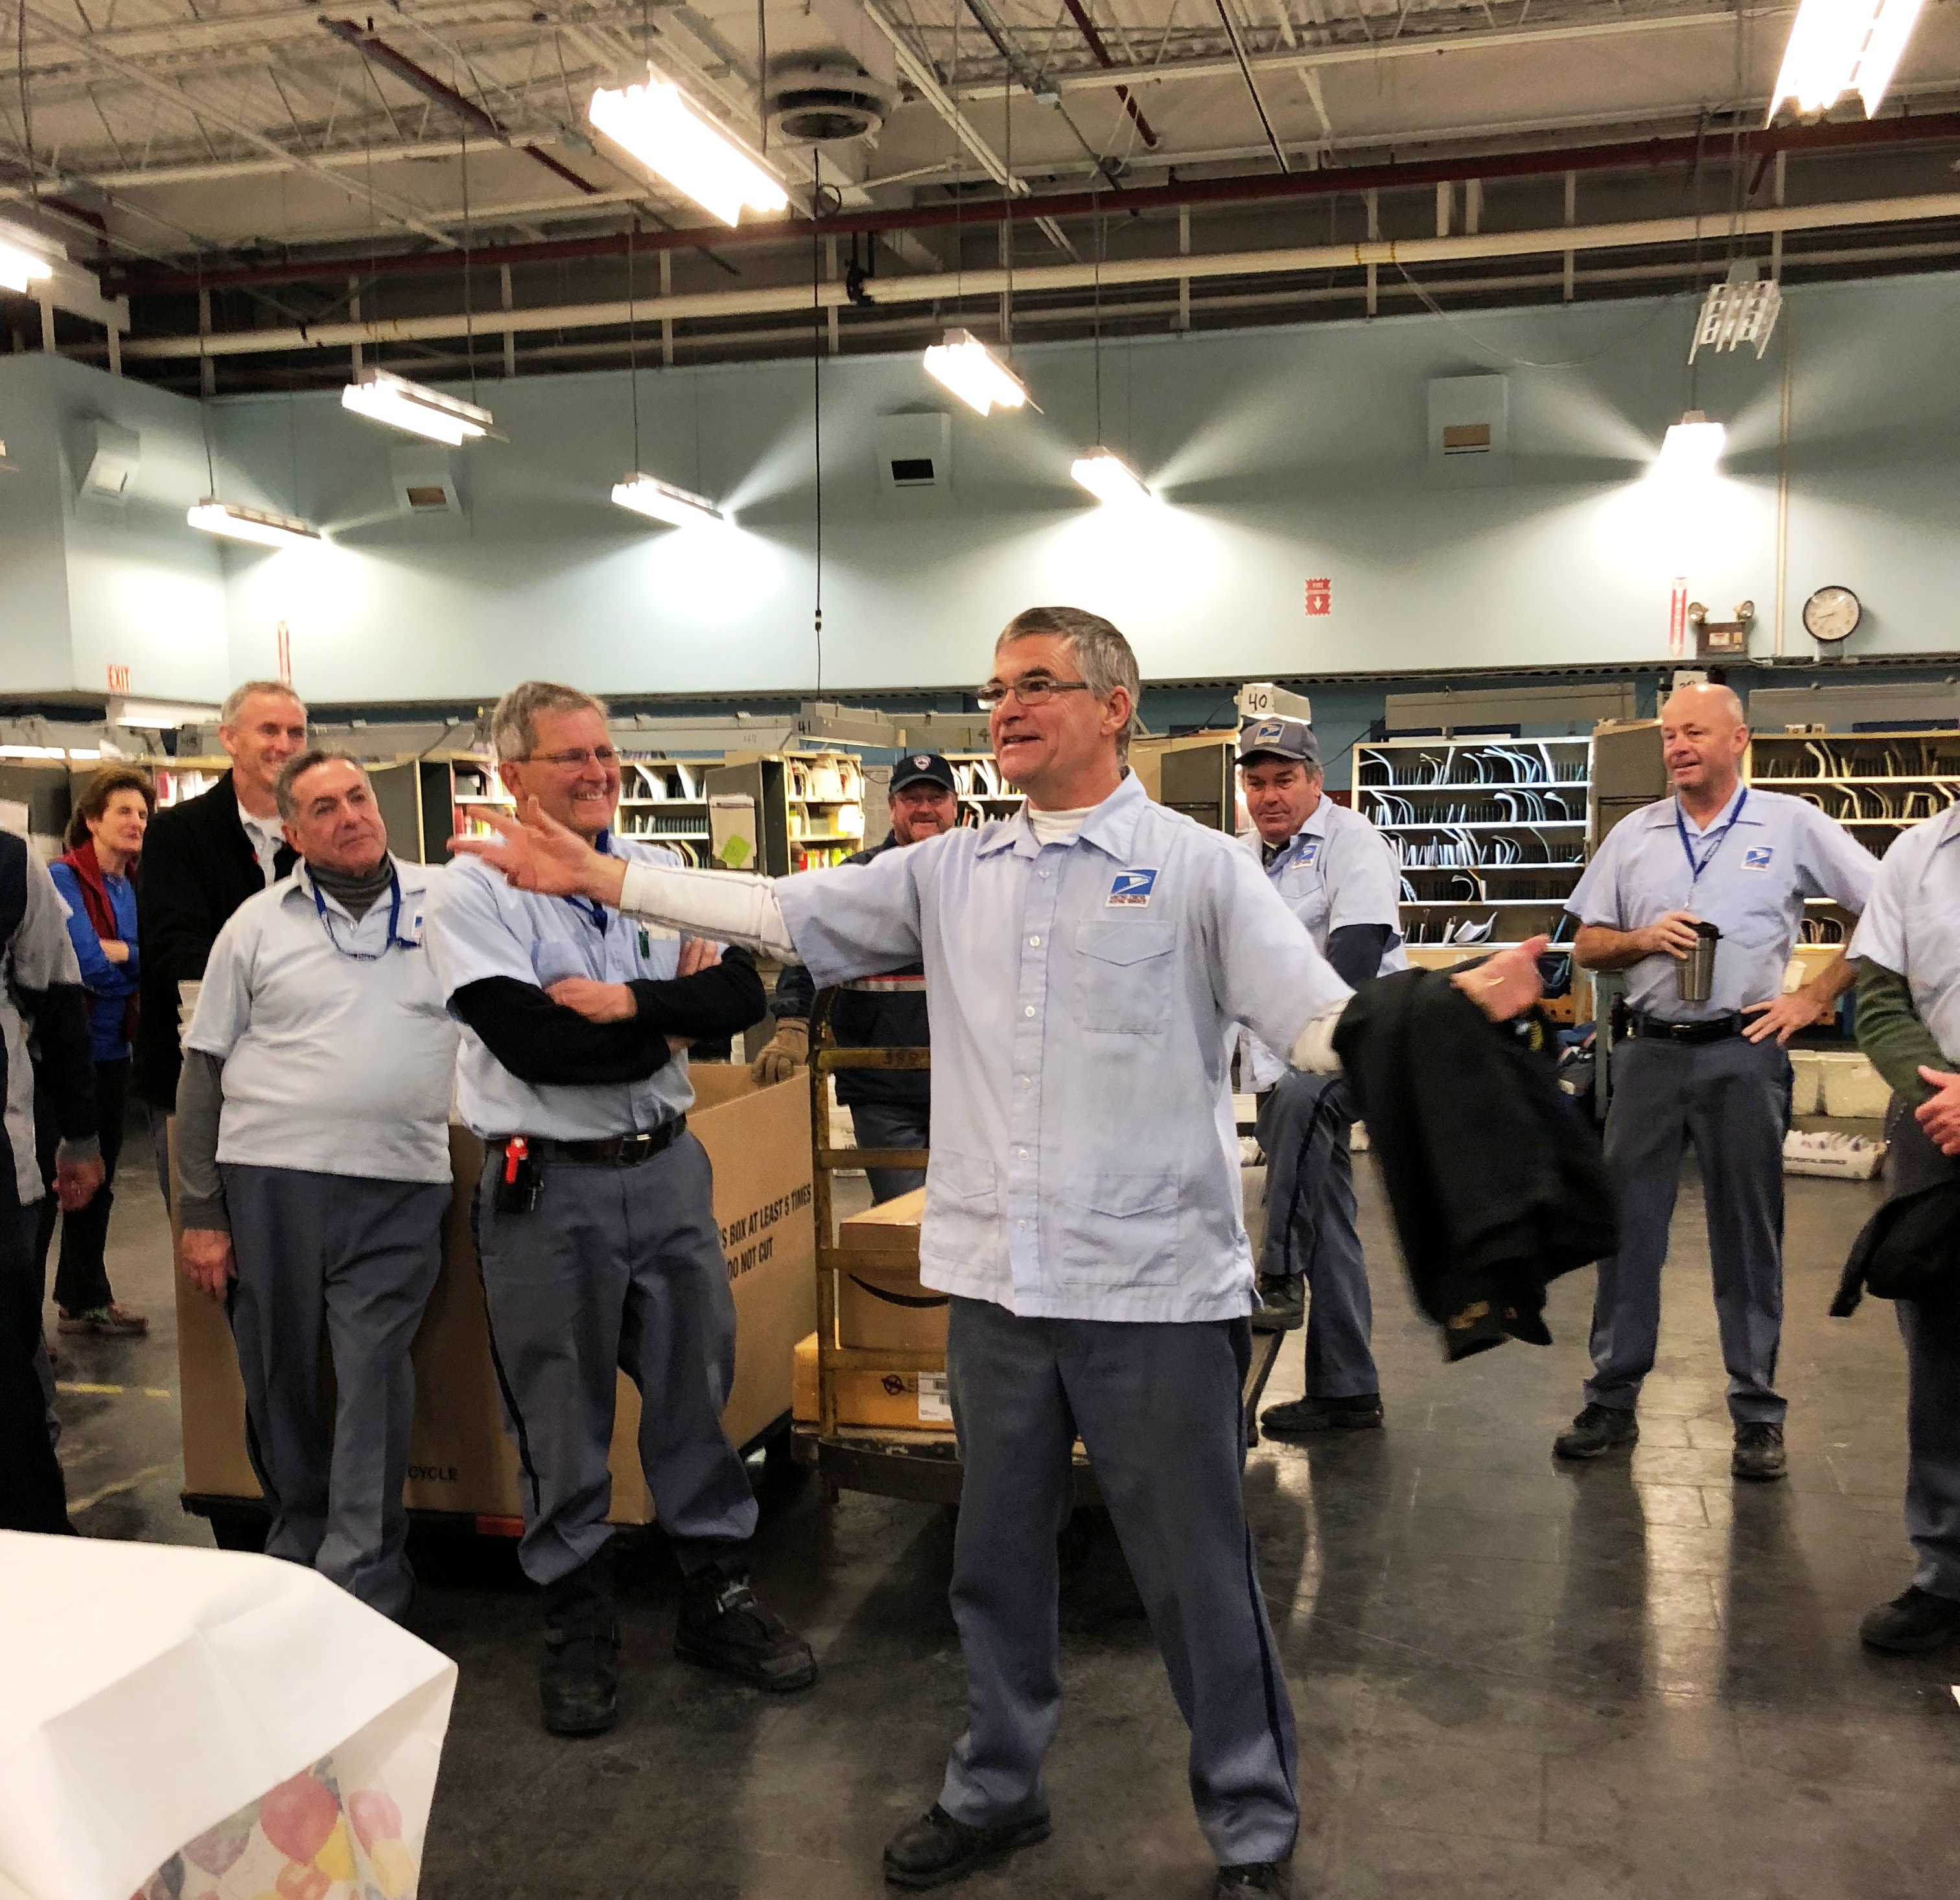 Bill Shea regales his Woburn coworkers with tales of yesteryear.